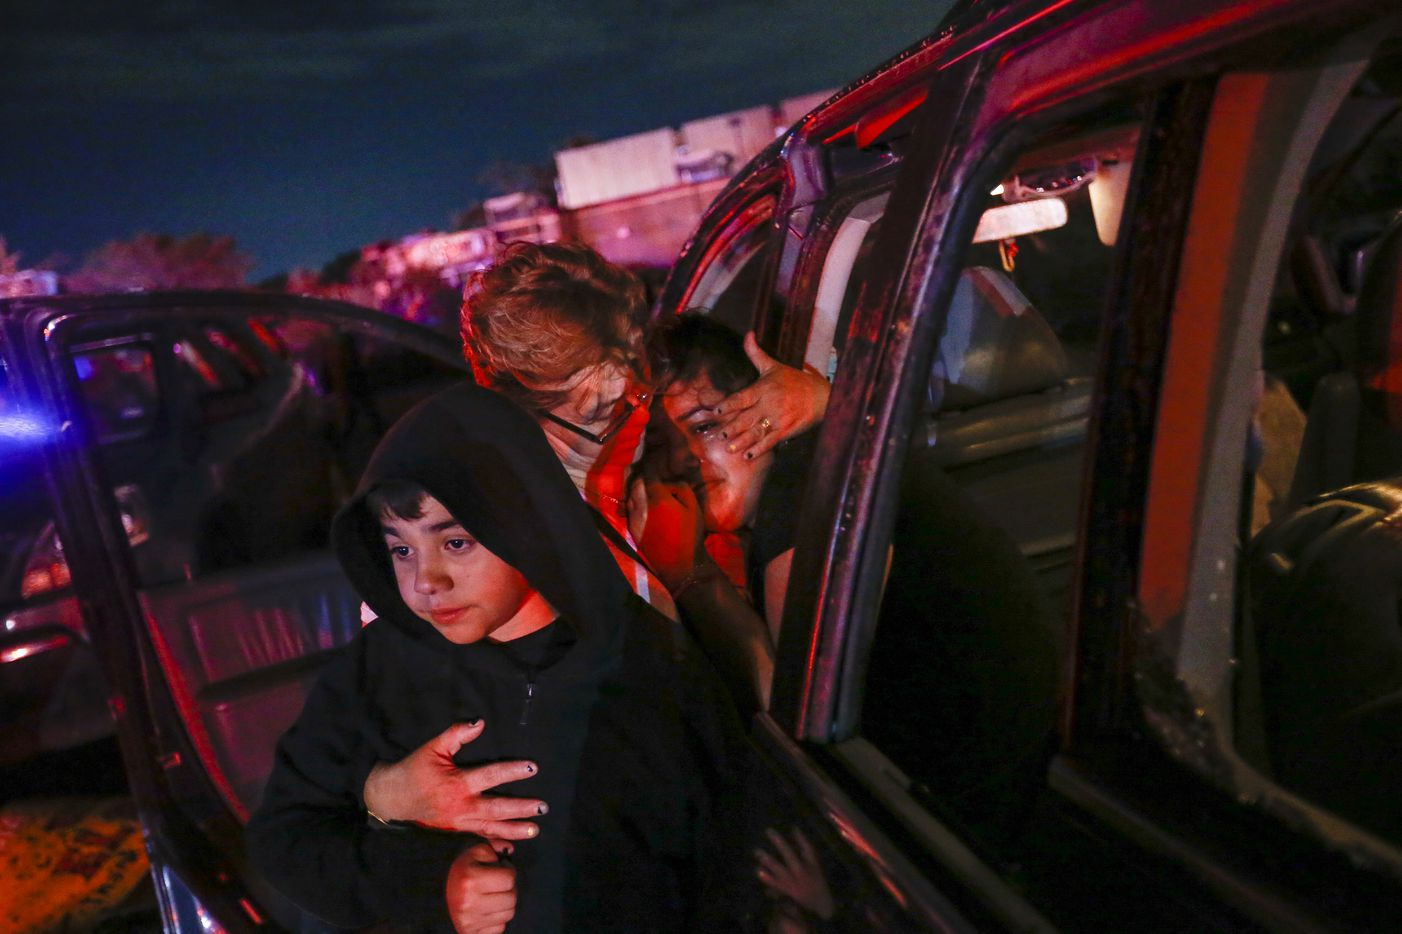 Araceli Estrada, center, embraces Laura Molina, 13, right, and Kevin Molina, 10, left, near the intersection of Walnut Hill Lane and Marsh Lane in Dallas where a storm hit Sunday, Oct. 20, 2019.